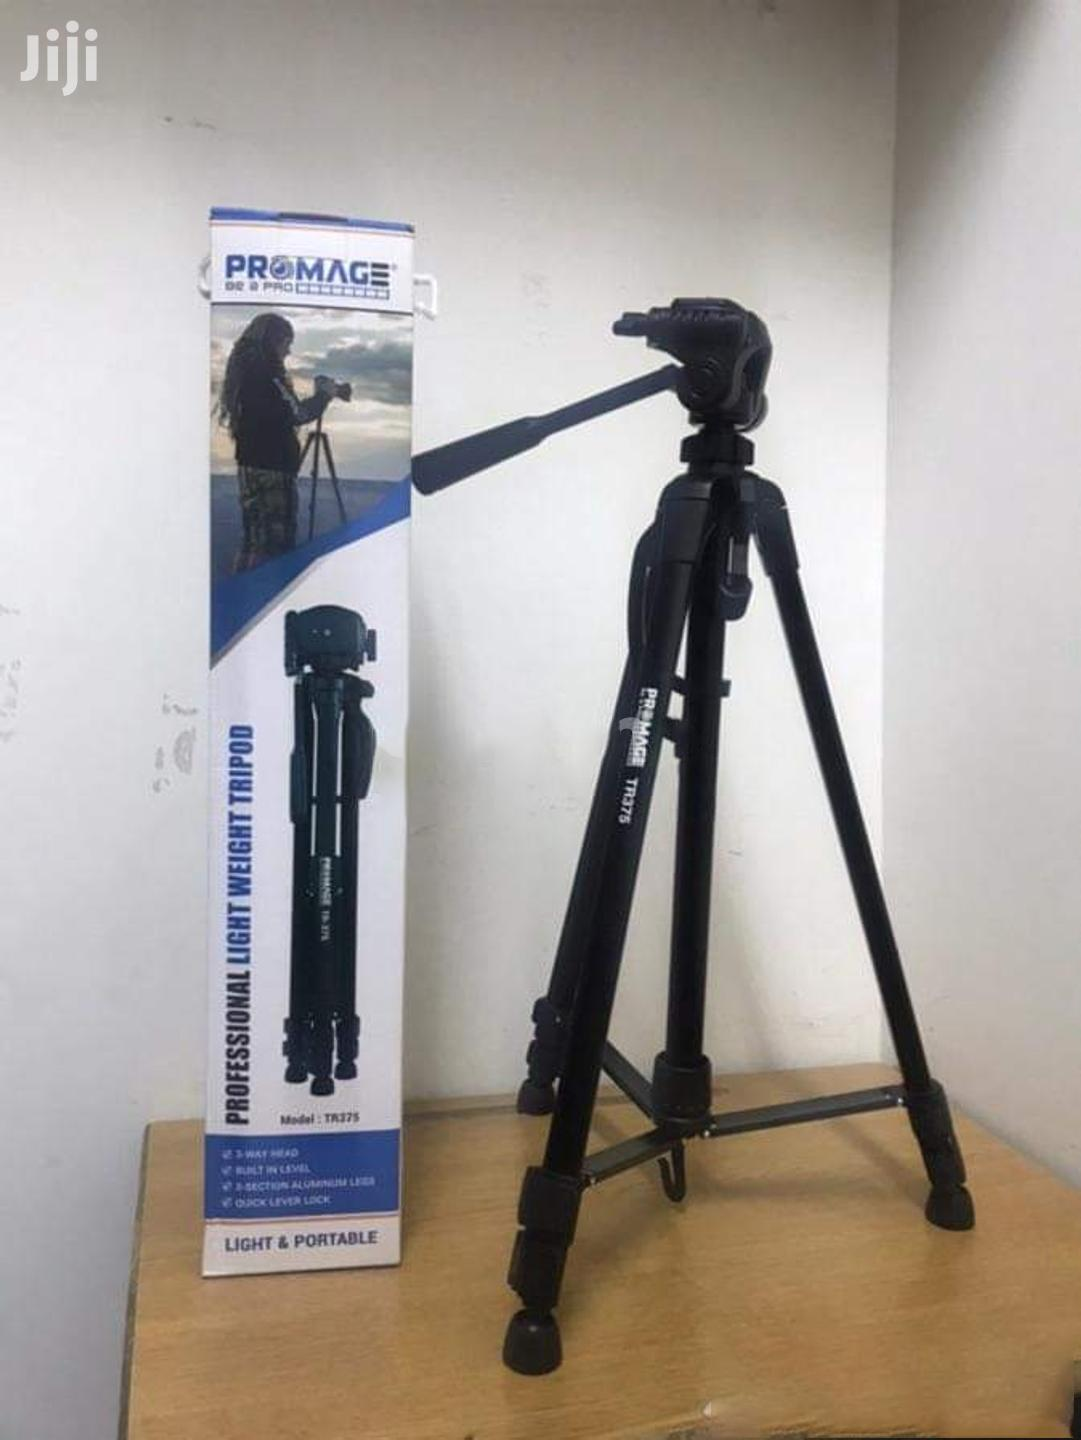 Promage Tr410 Heavy Weight Camera Tripod Stand